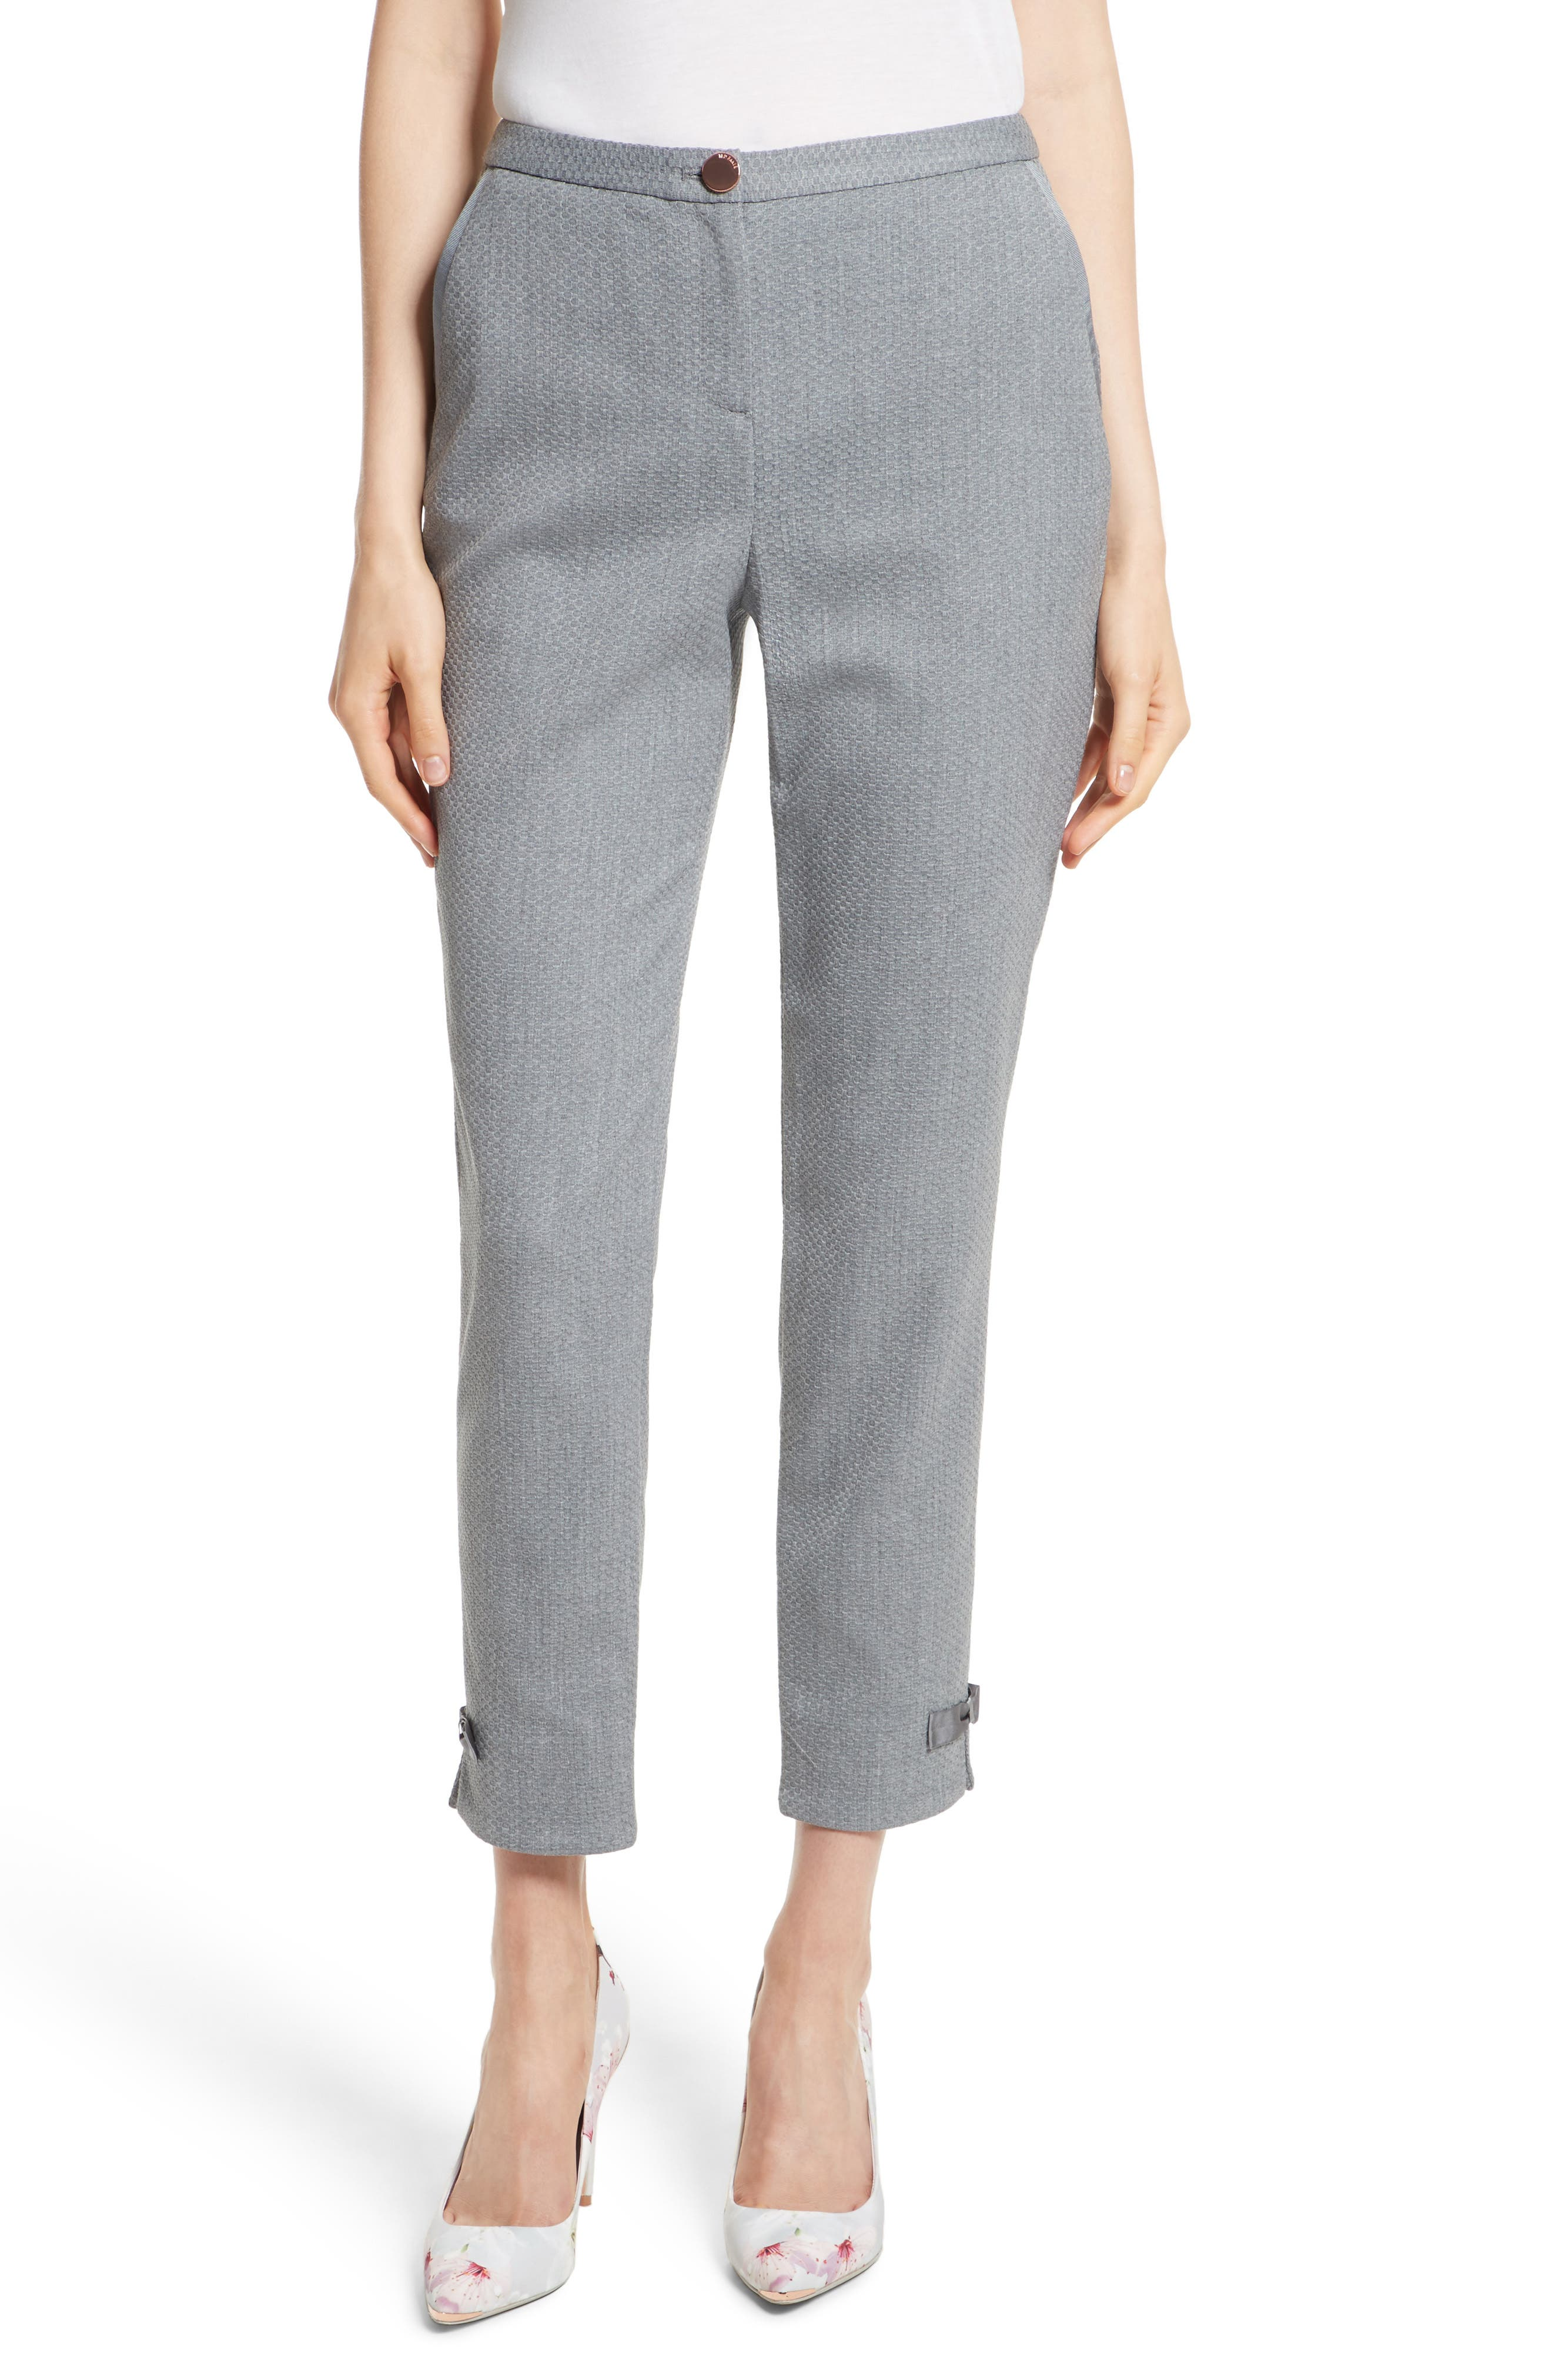 Nadaet Bow Detail Textured Ankle Trousers,                         Main,                         color, Mid Grey